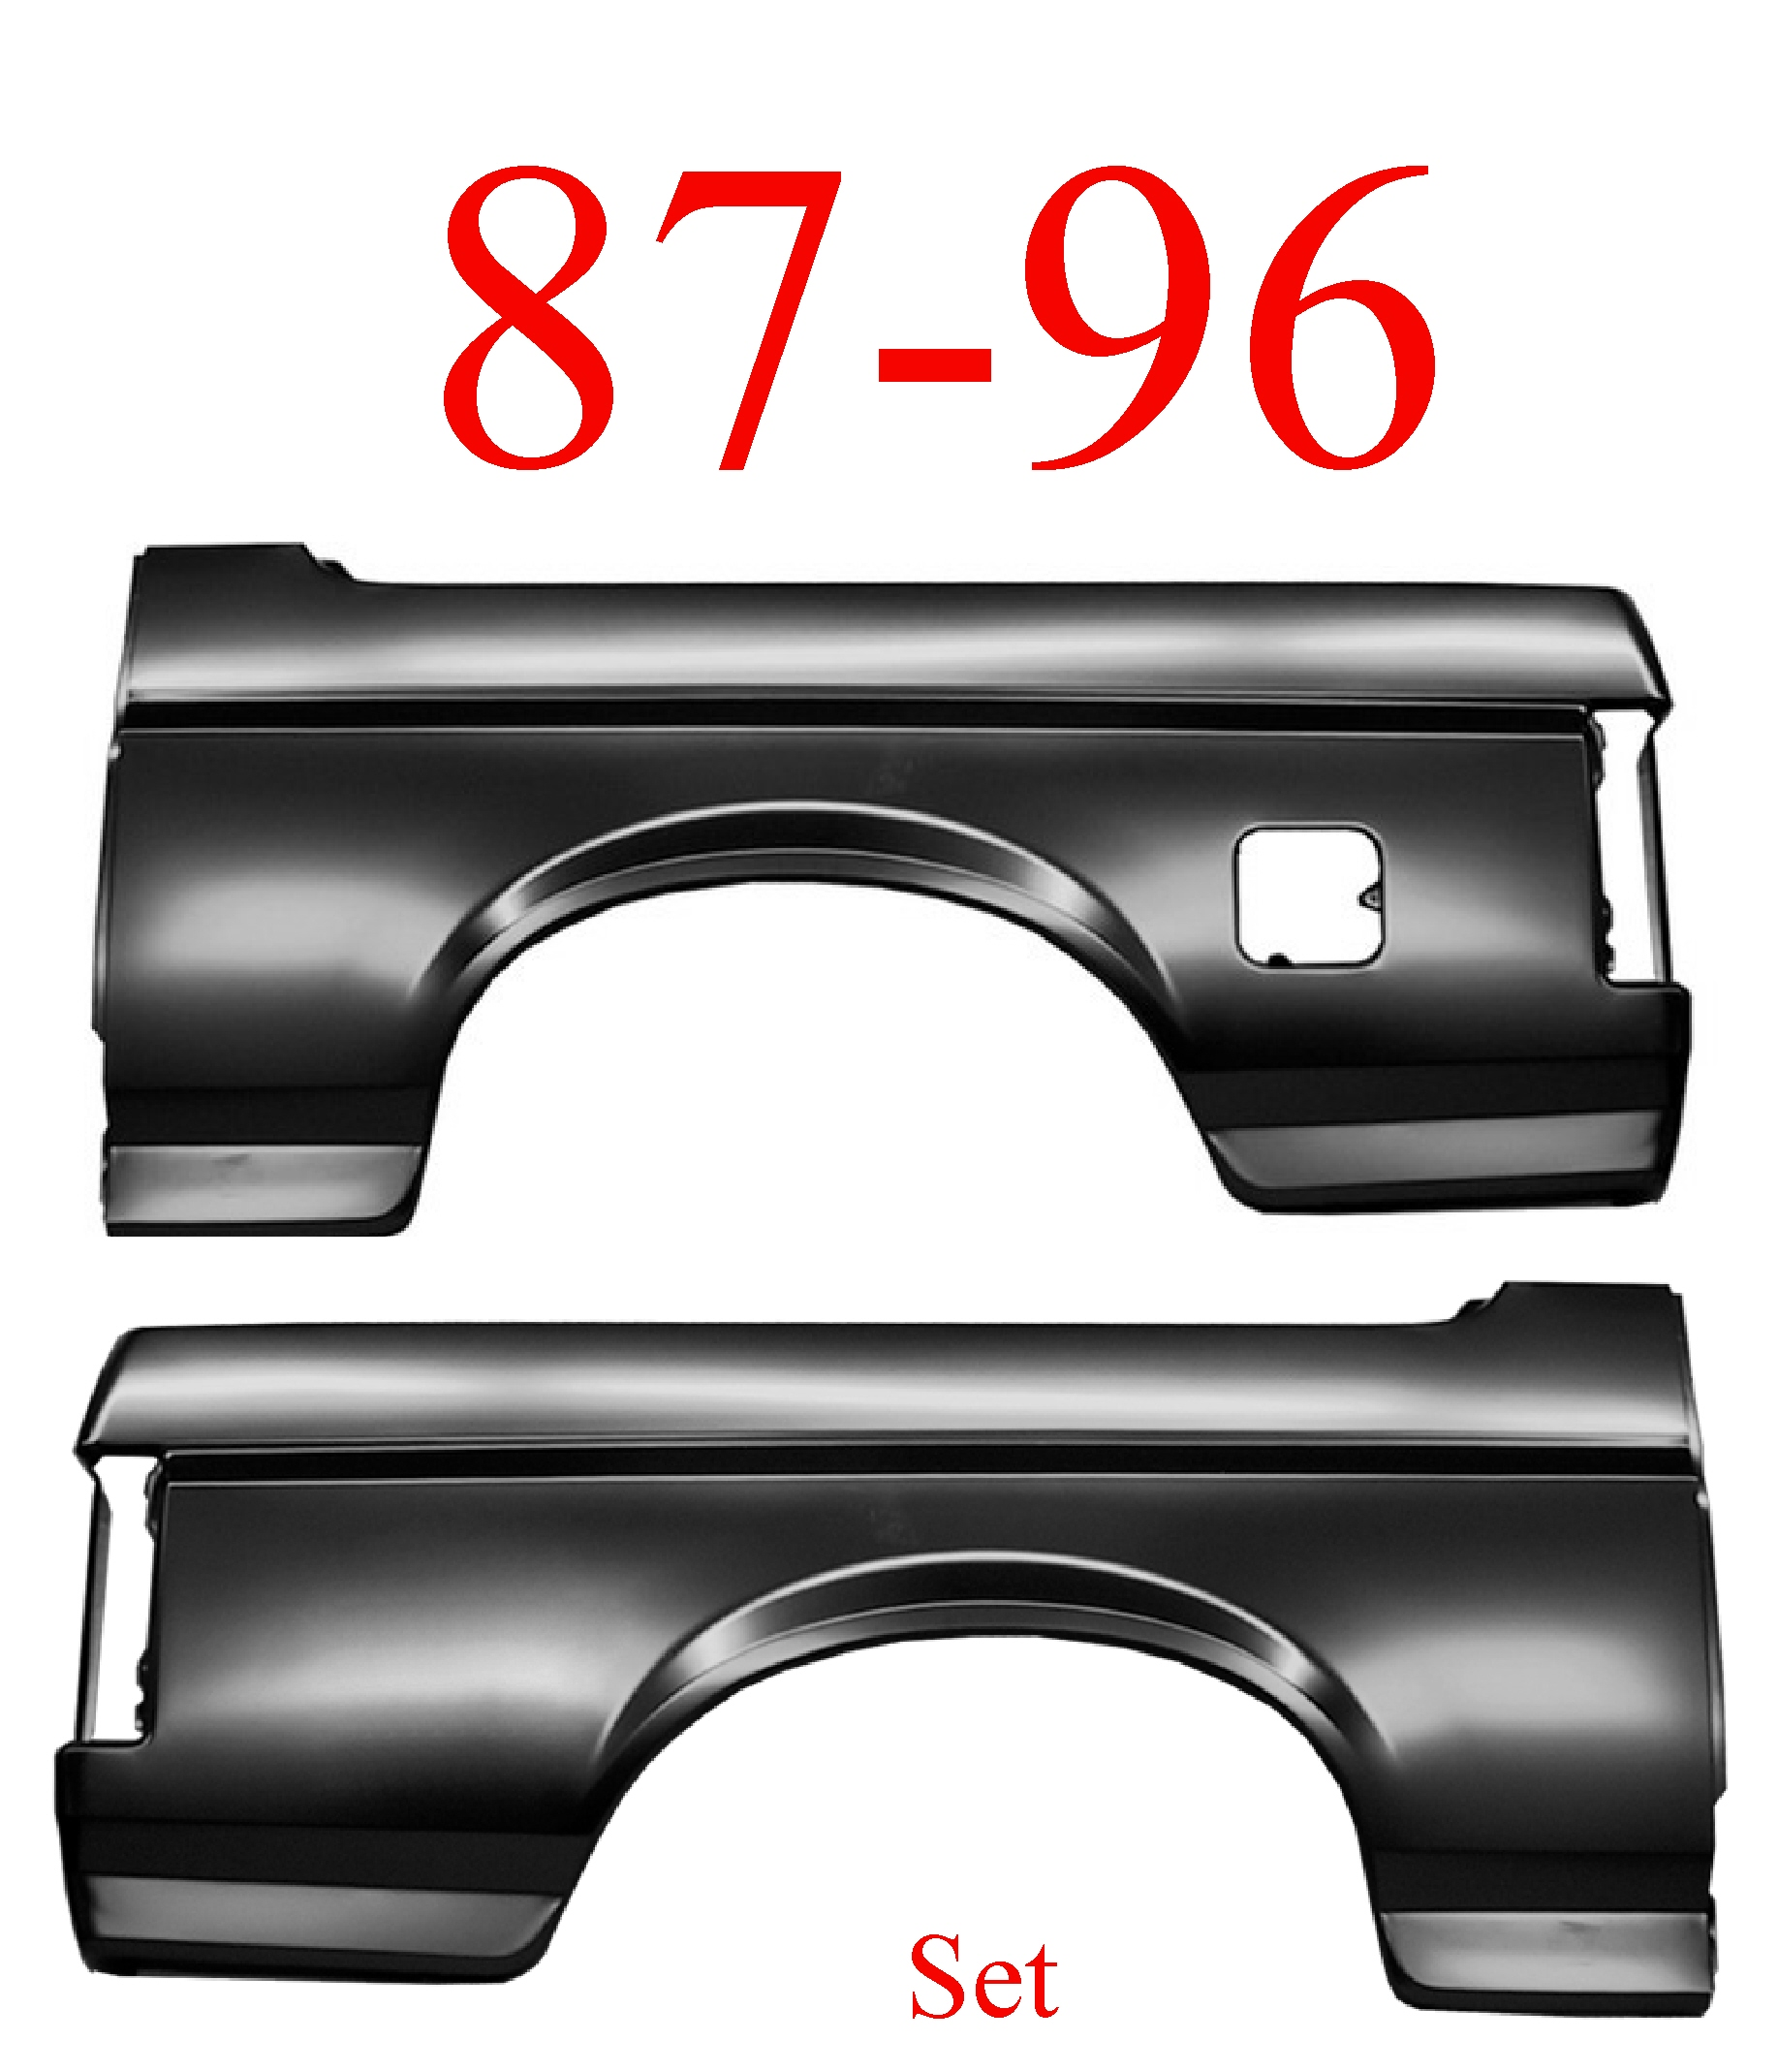 Ford Truck & Bronco 80-96, MrTailLight com Online Store